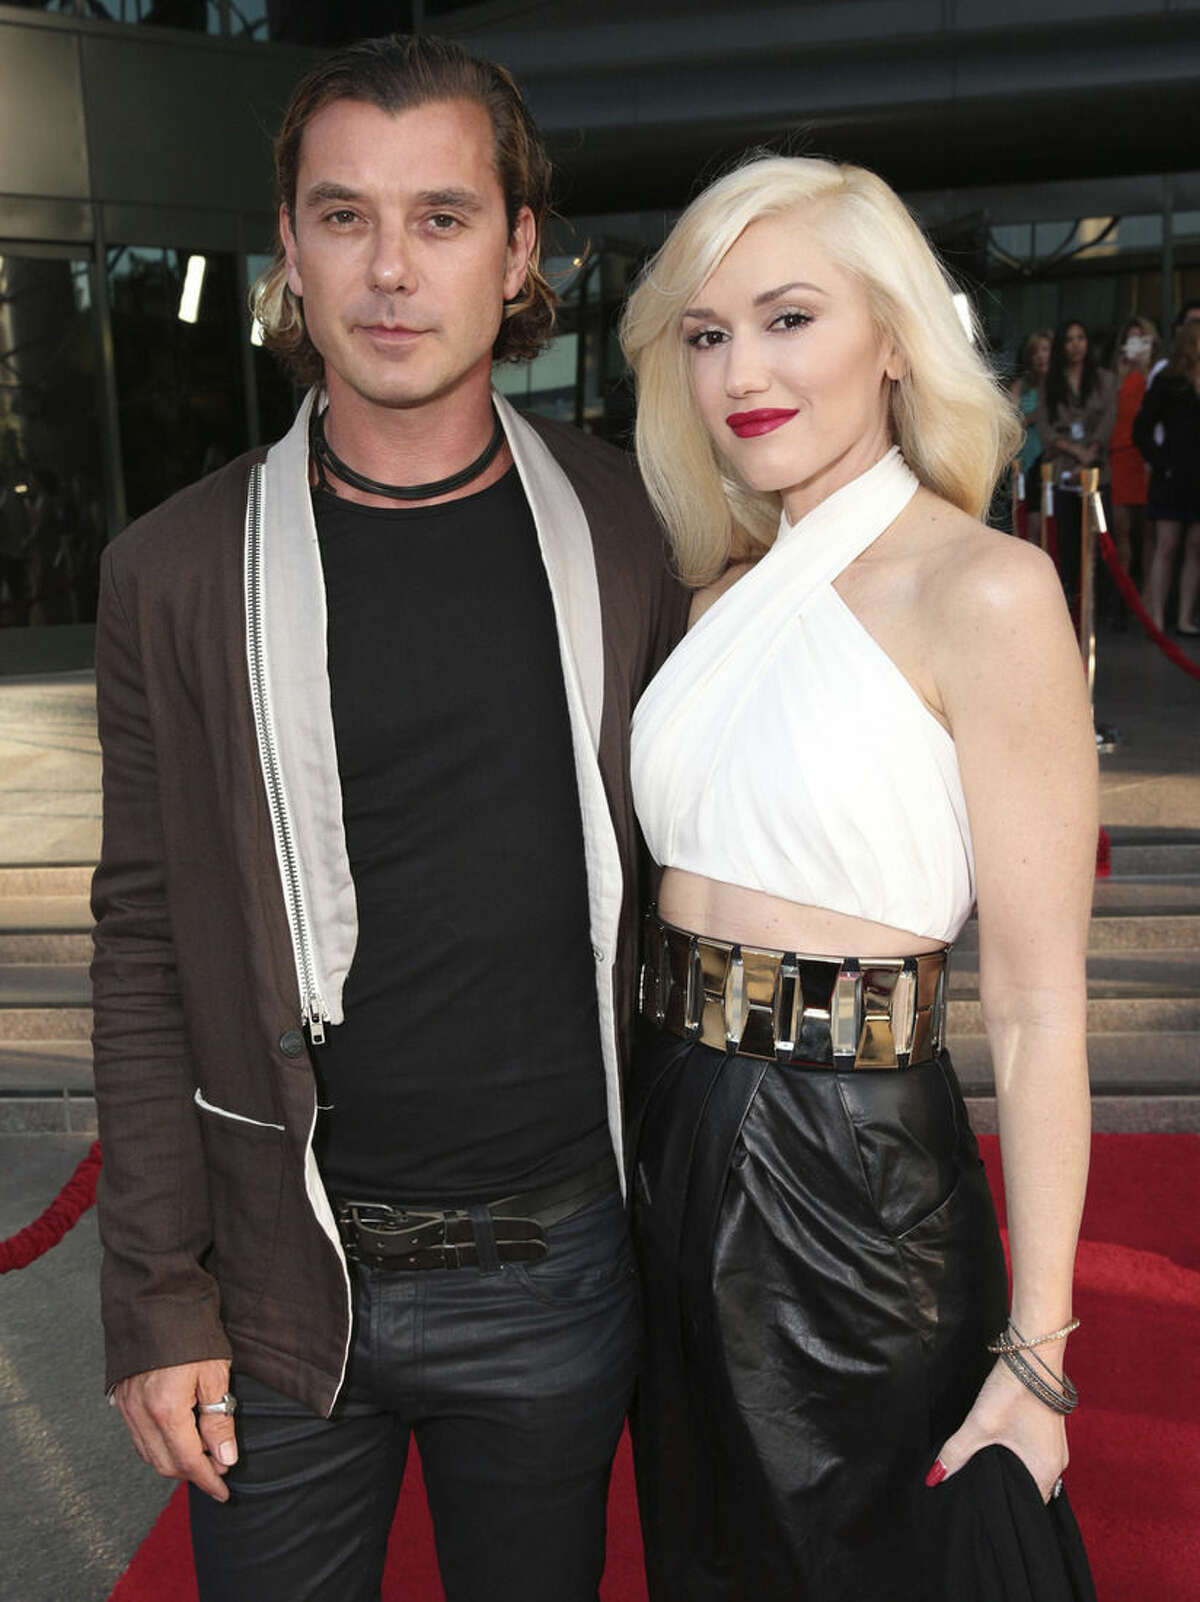 FILE - In this June 4, 2013 file photo, musicians Gavin Rossdale, left, and Gwen Stefani attend the LA premiere of